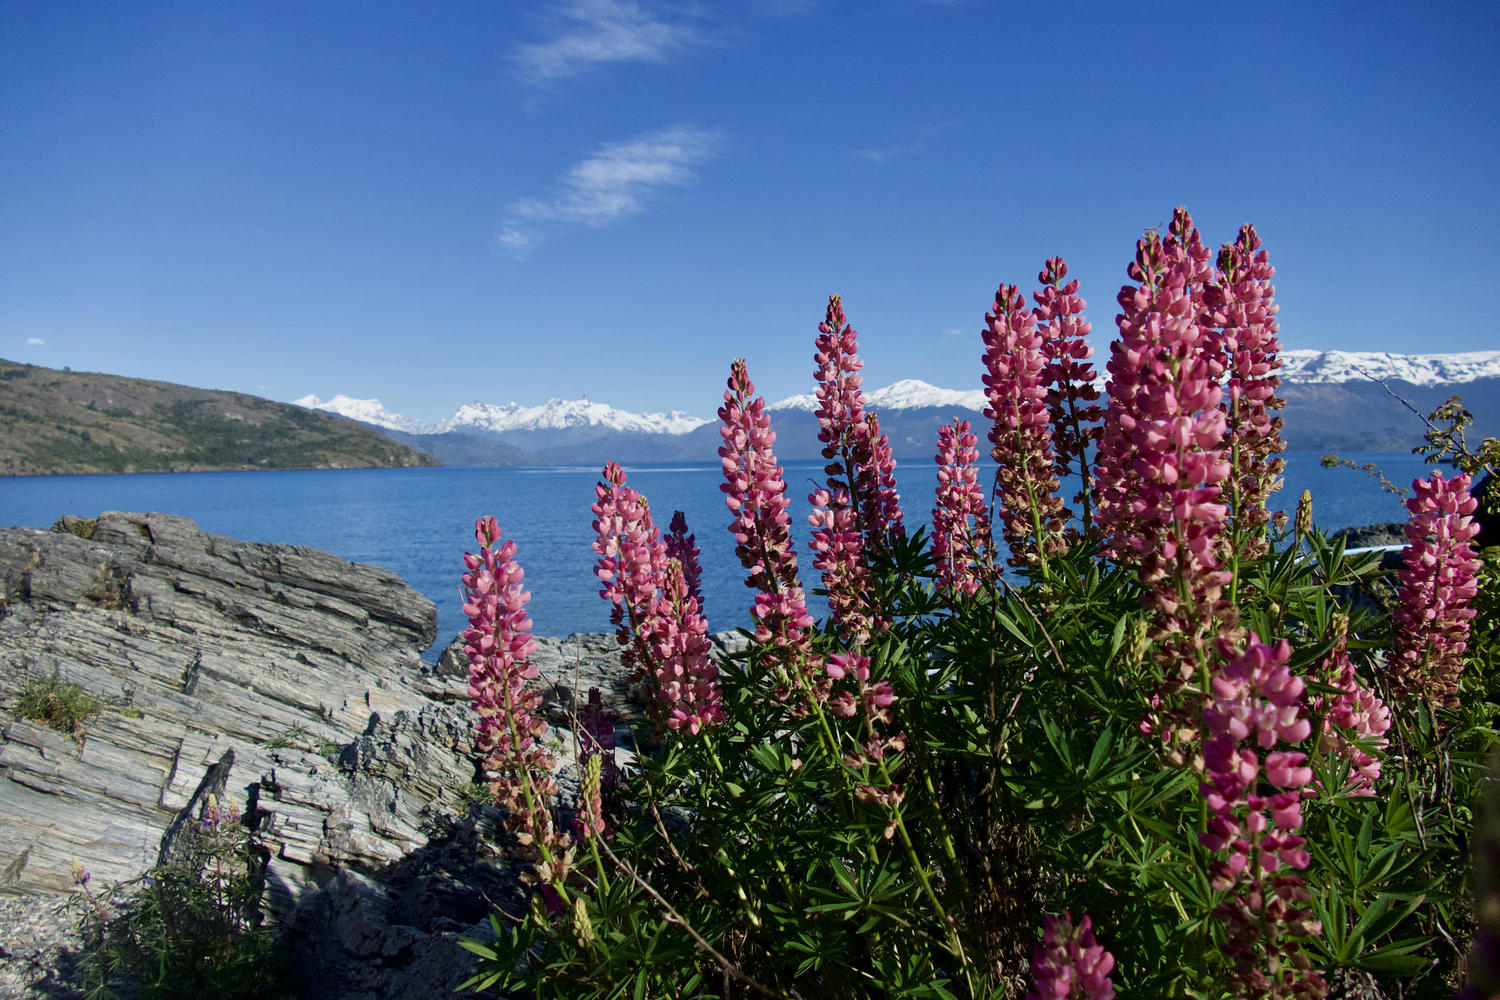 Lupins on the lakeshore by Guadal